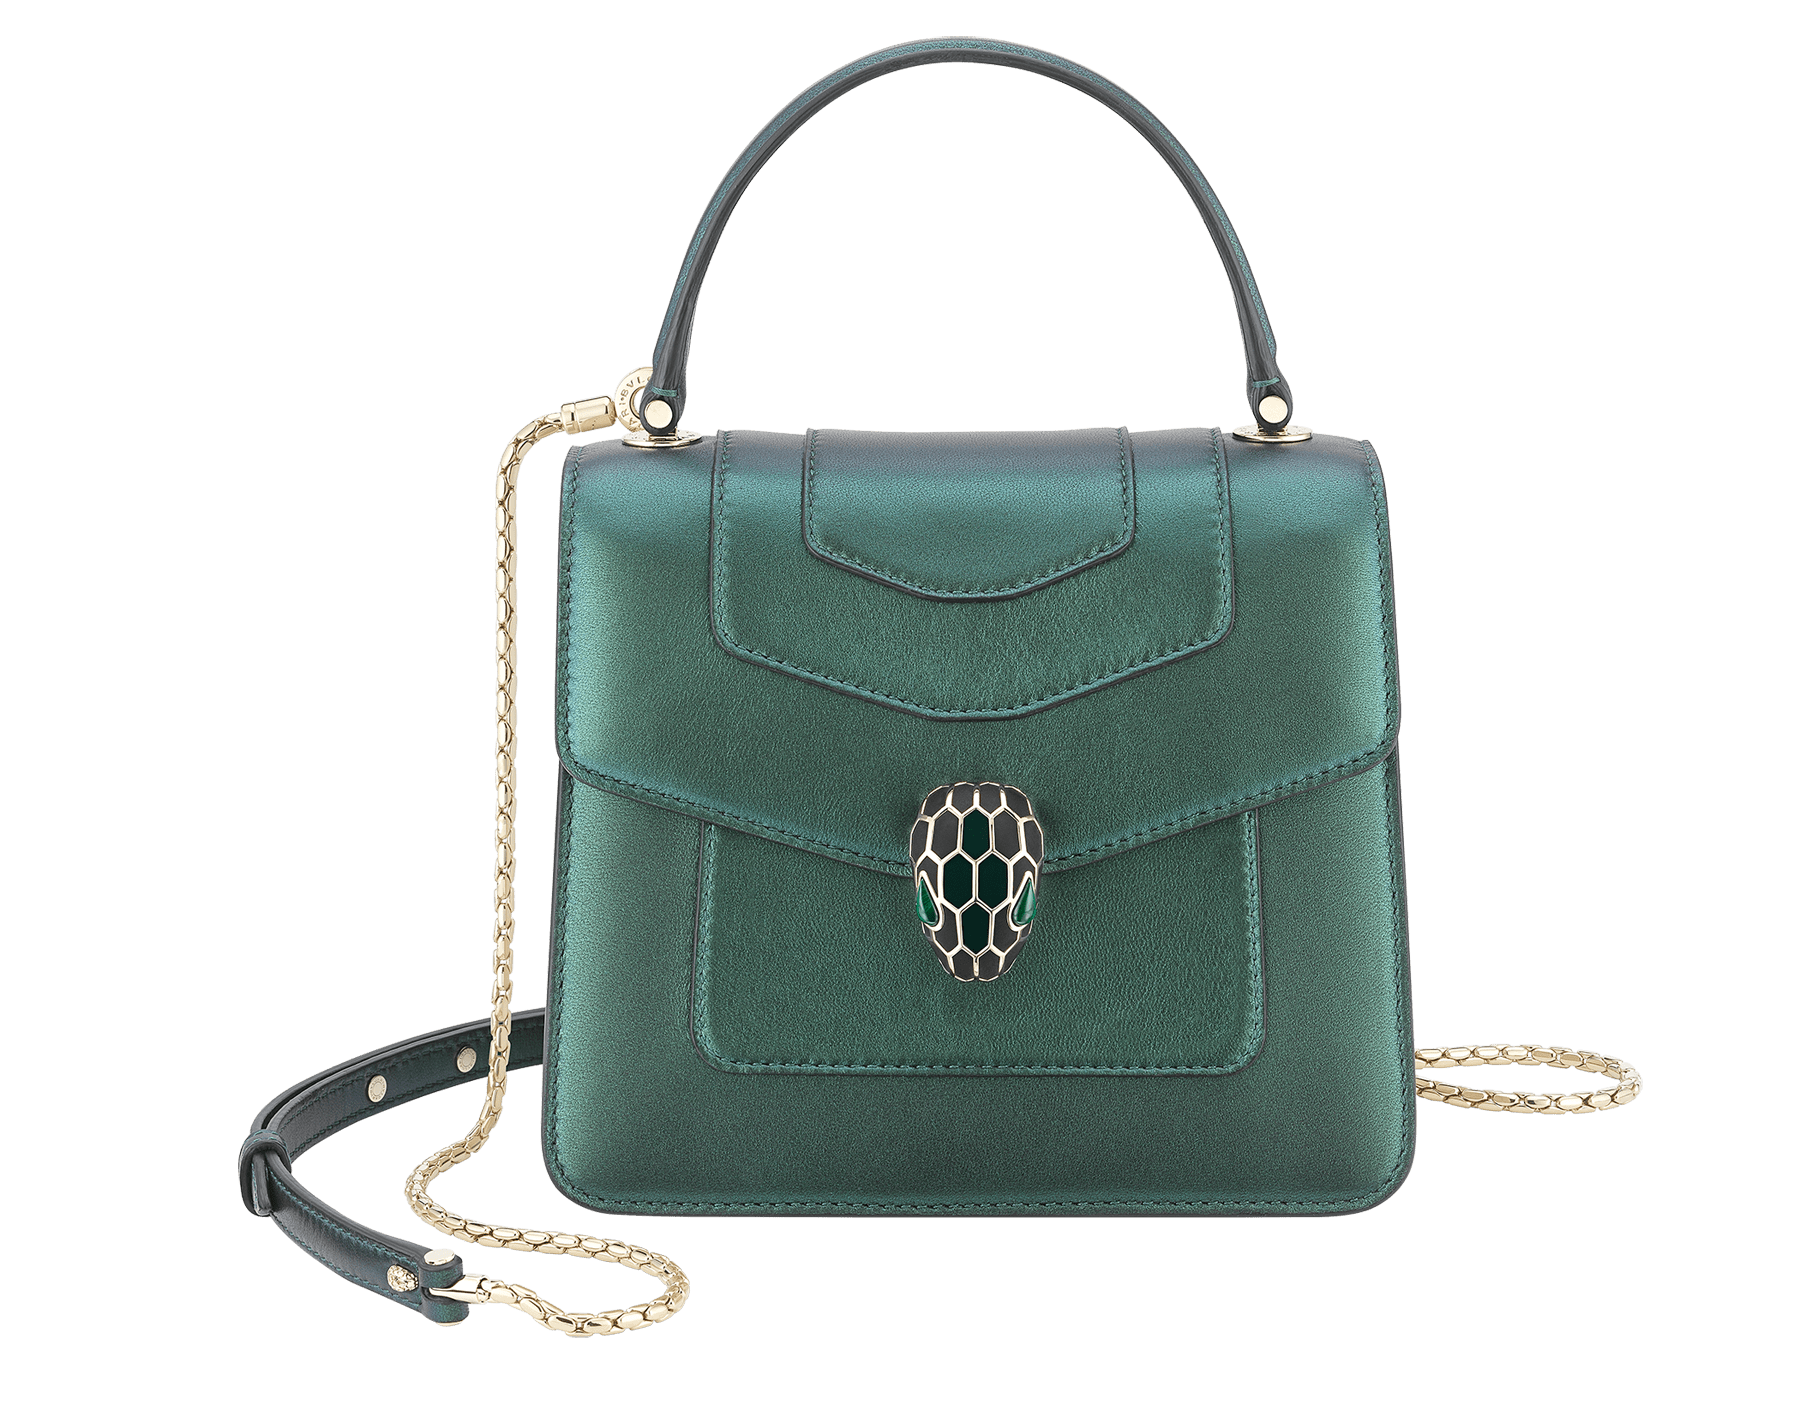 """Serpenti Forever "" crossbody bag in pearled emerald nappa leather. Iconic snakehead closure in light gold plated brass enriched with black and forest emerald enamel and green malachite eyes. Special Edition. 289837 image 1"